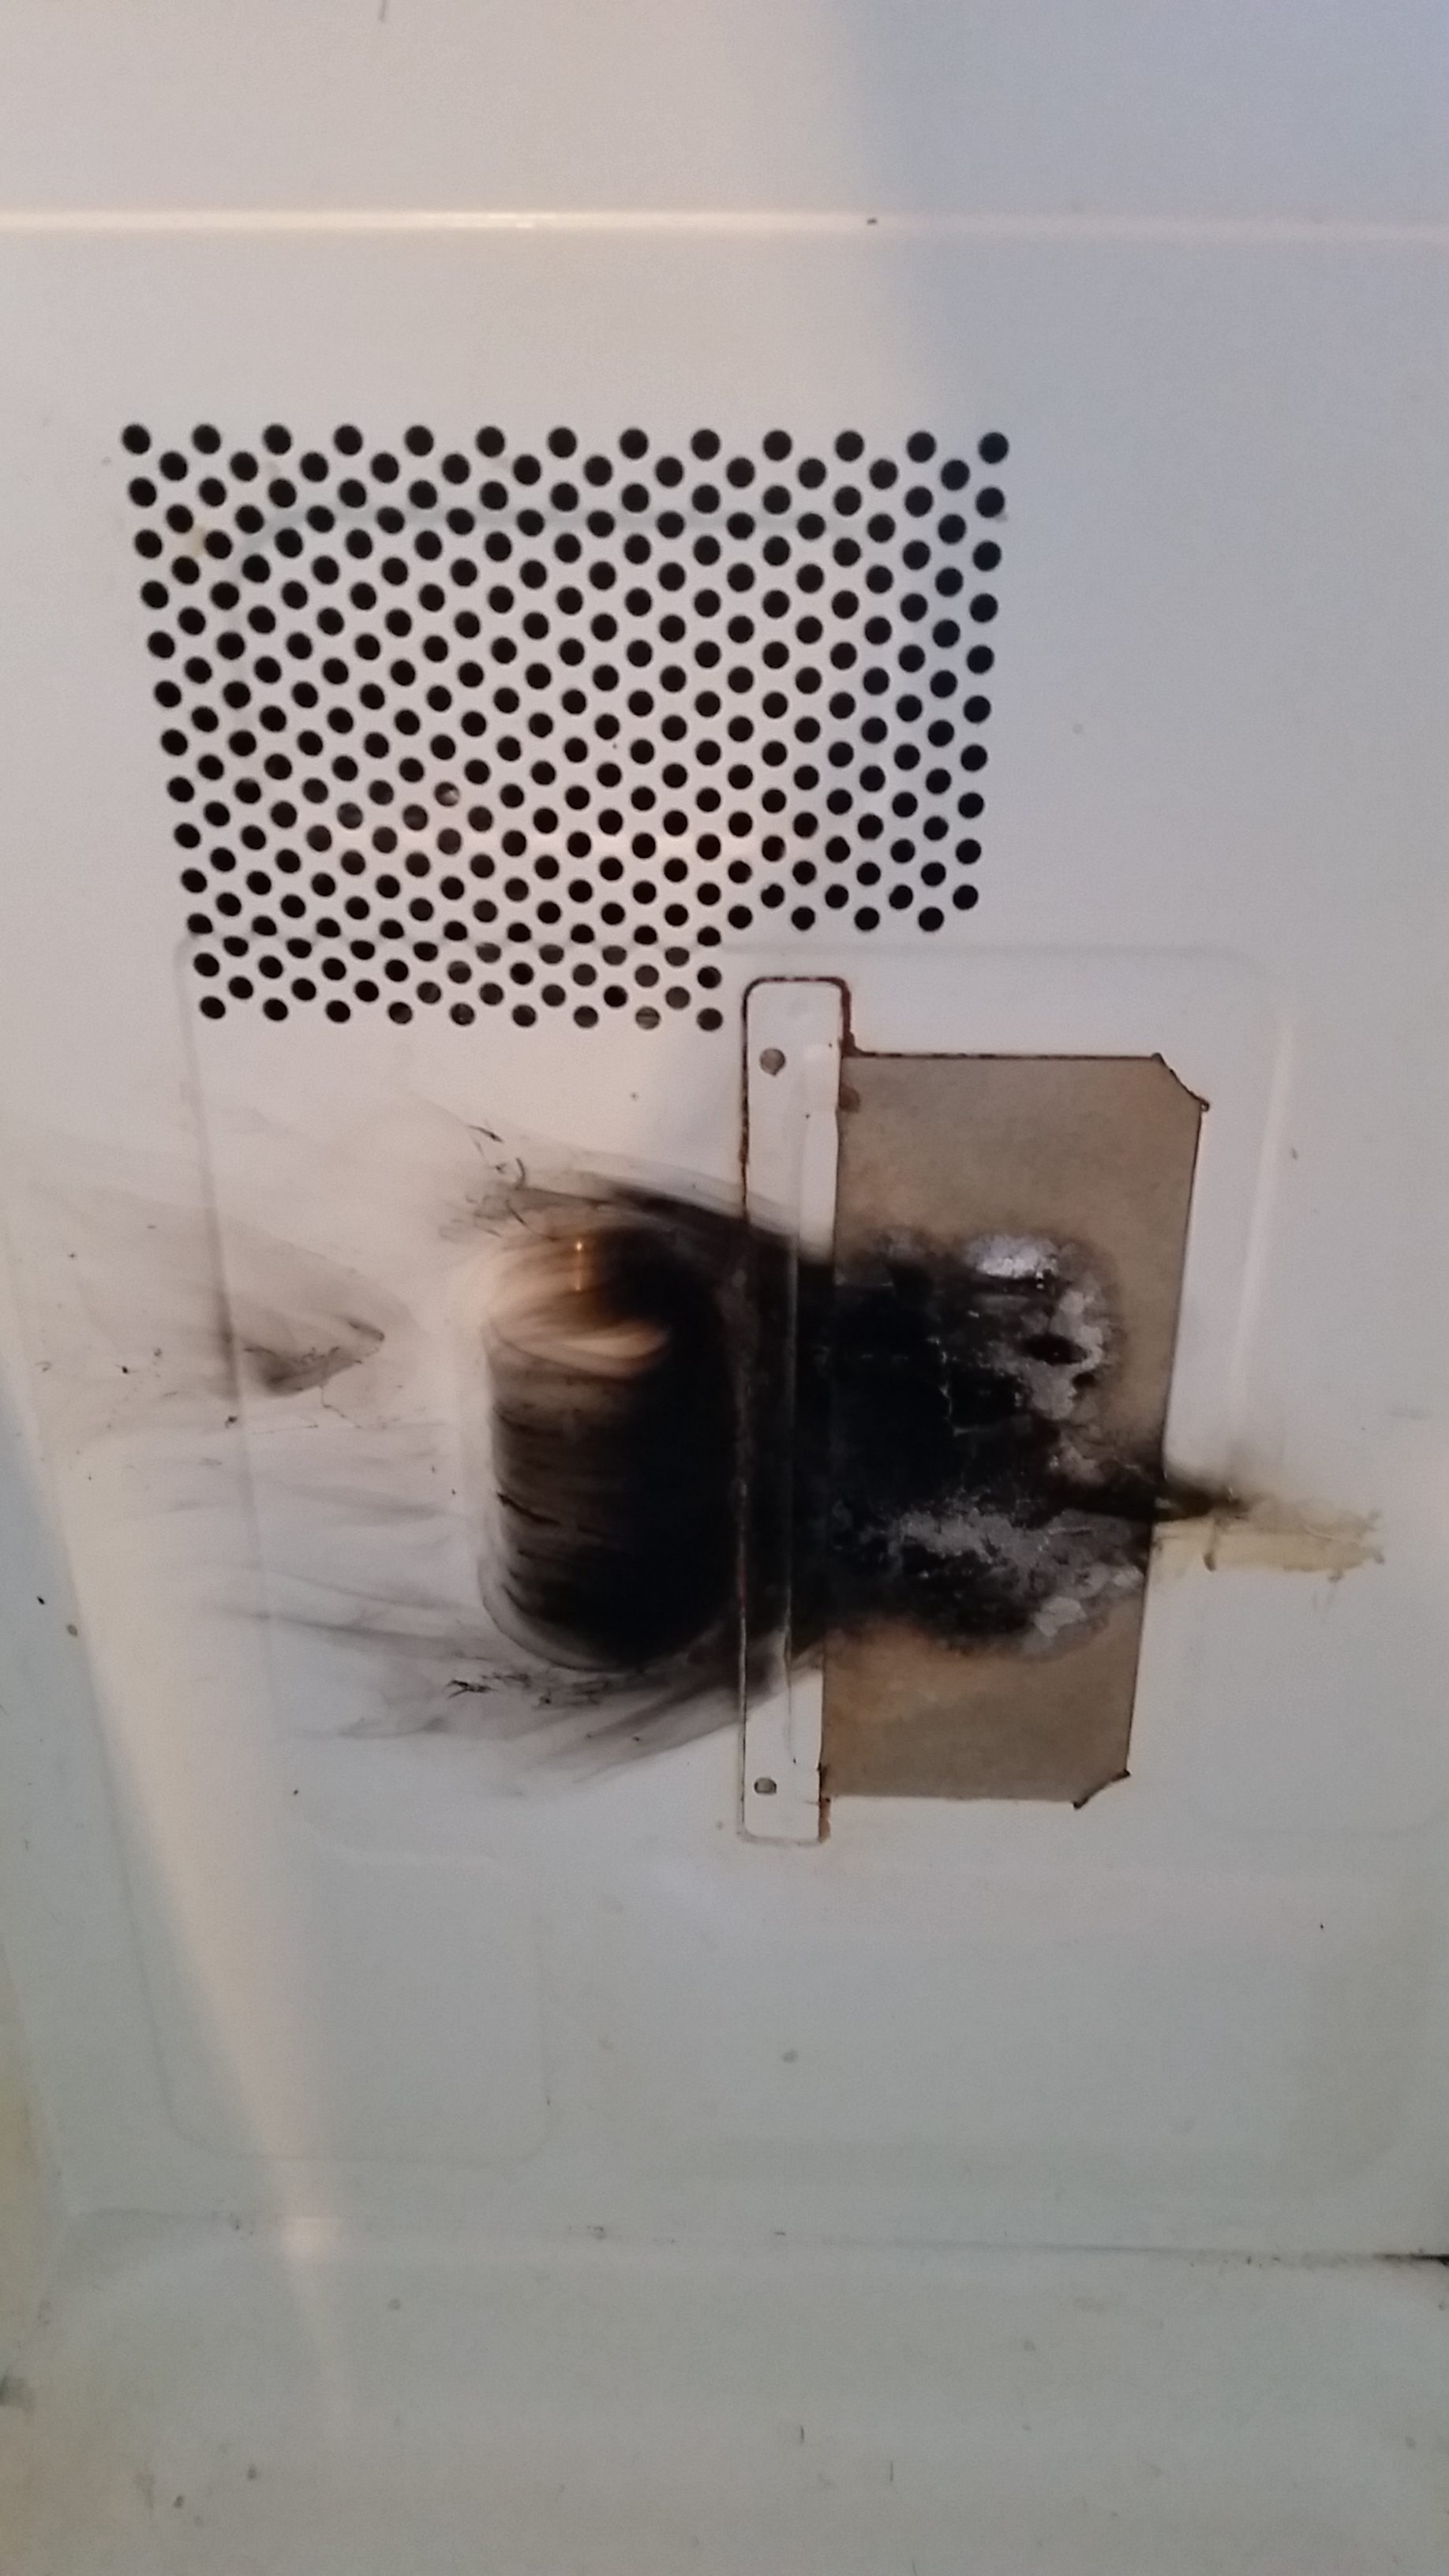 My Panasonic Microwave M N Nn Sn661s Caught On Fire I Had To Unplug It Make The Stop And Put Out Flames Contacted